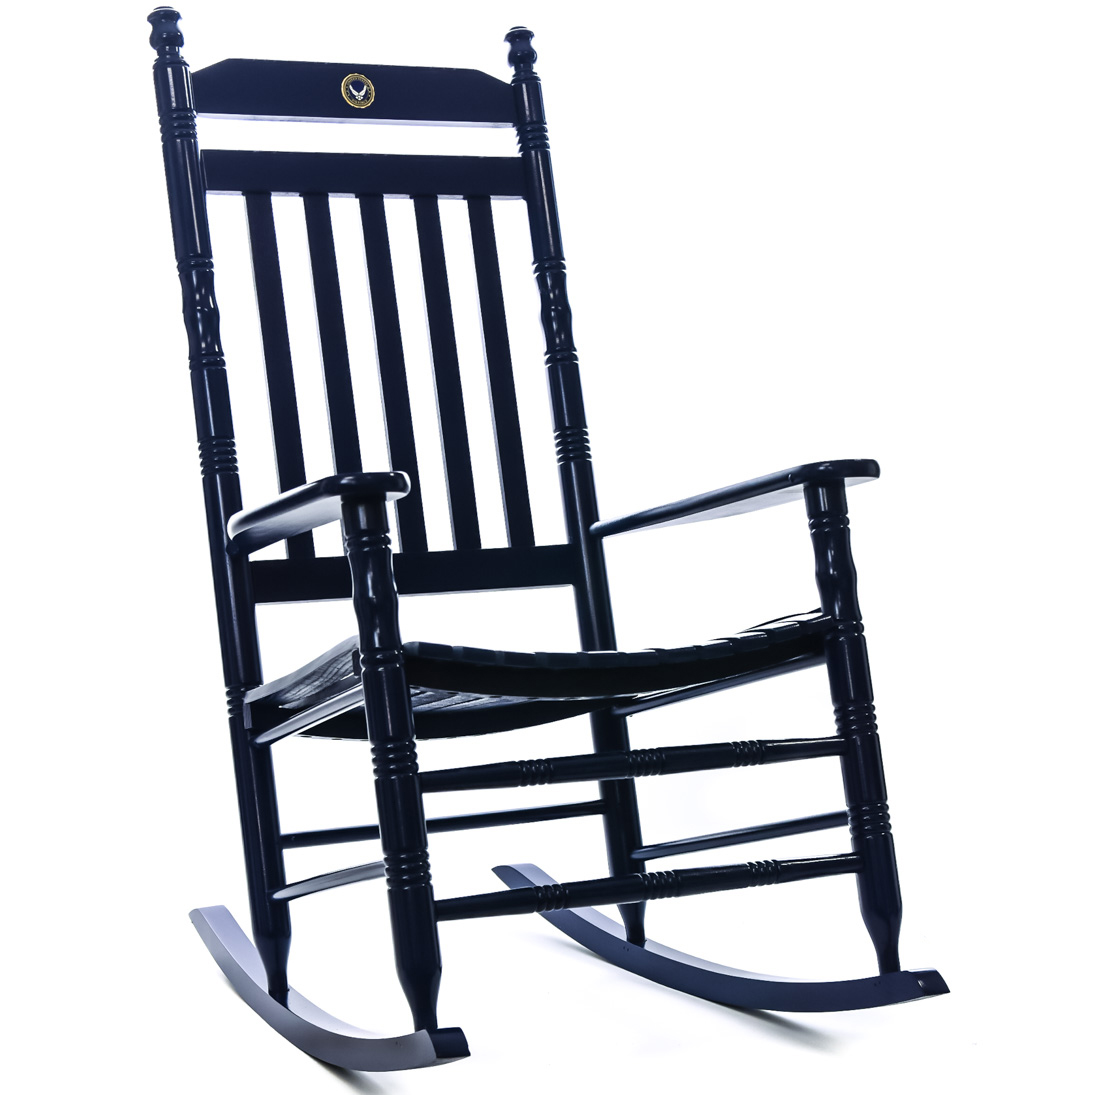 Rocking Chair U S Air Force Fully Assembled Rocking Chair